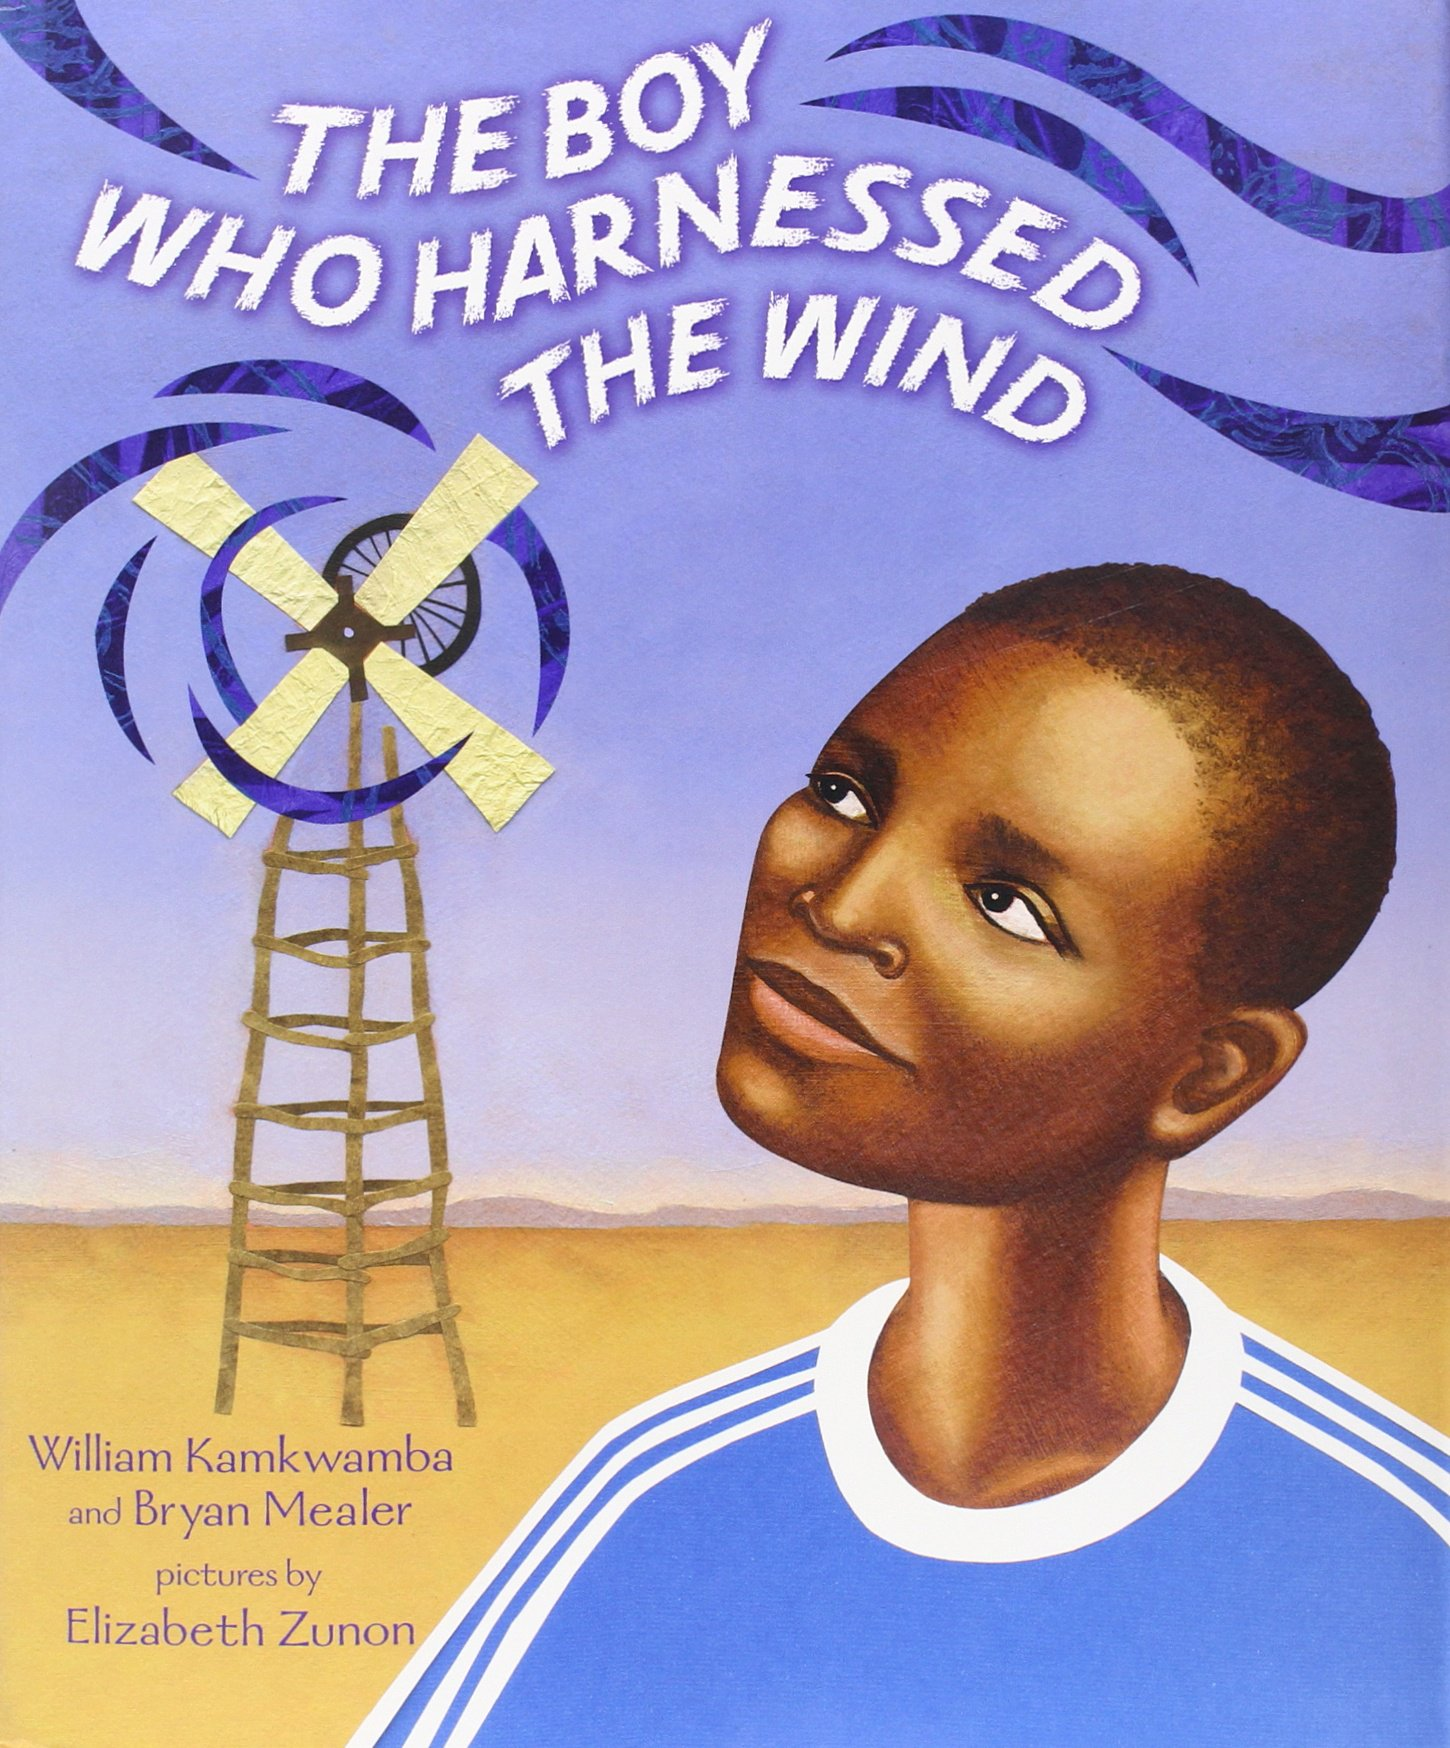 The Boy Who Harnessed the Wind – Kamkwamba